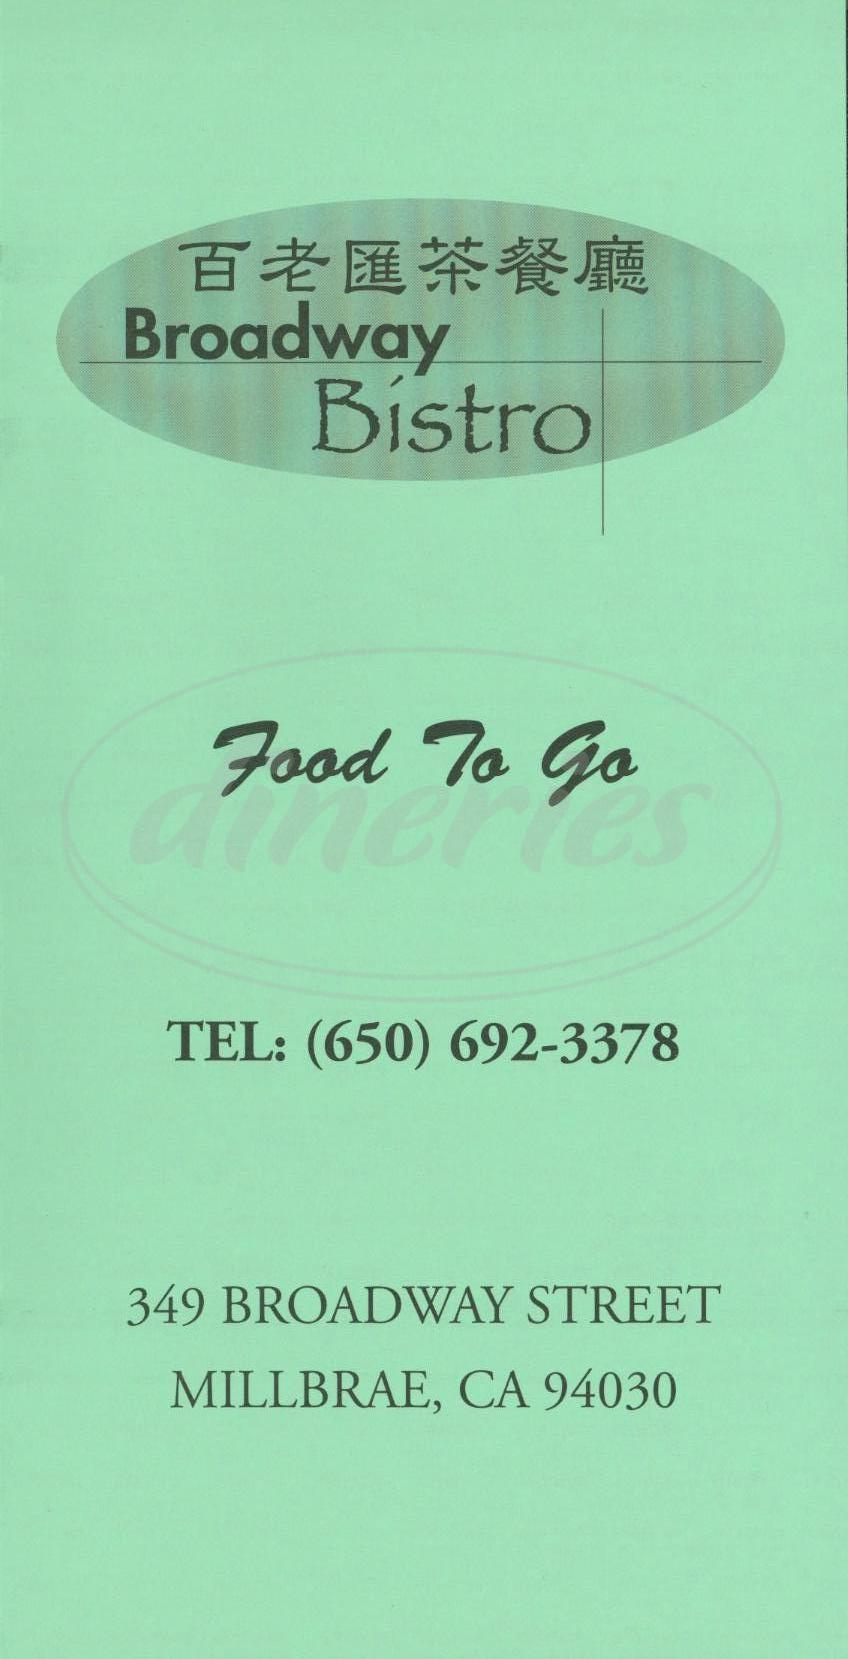 menu for Broadway Bistro